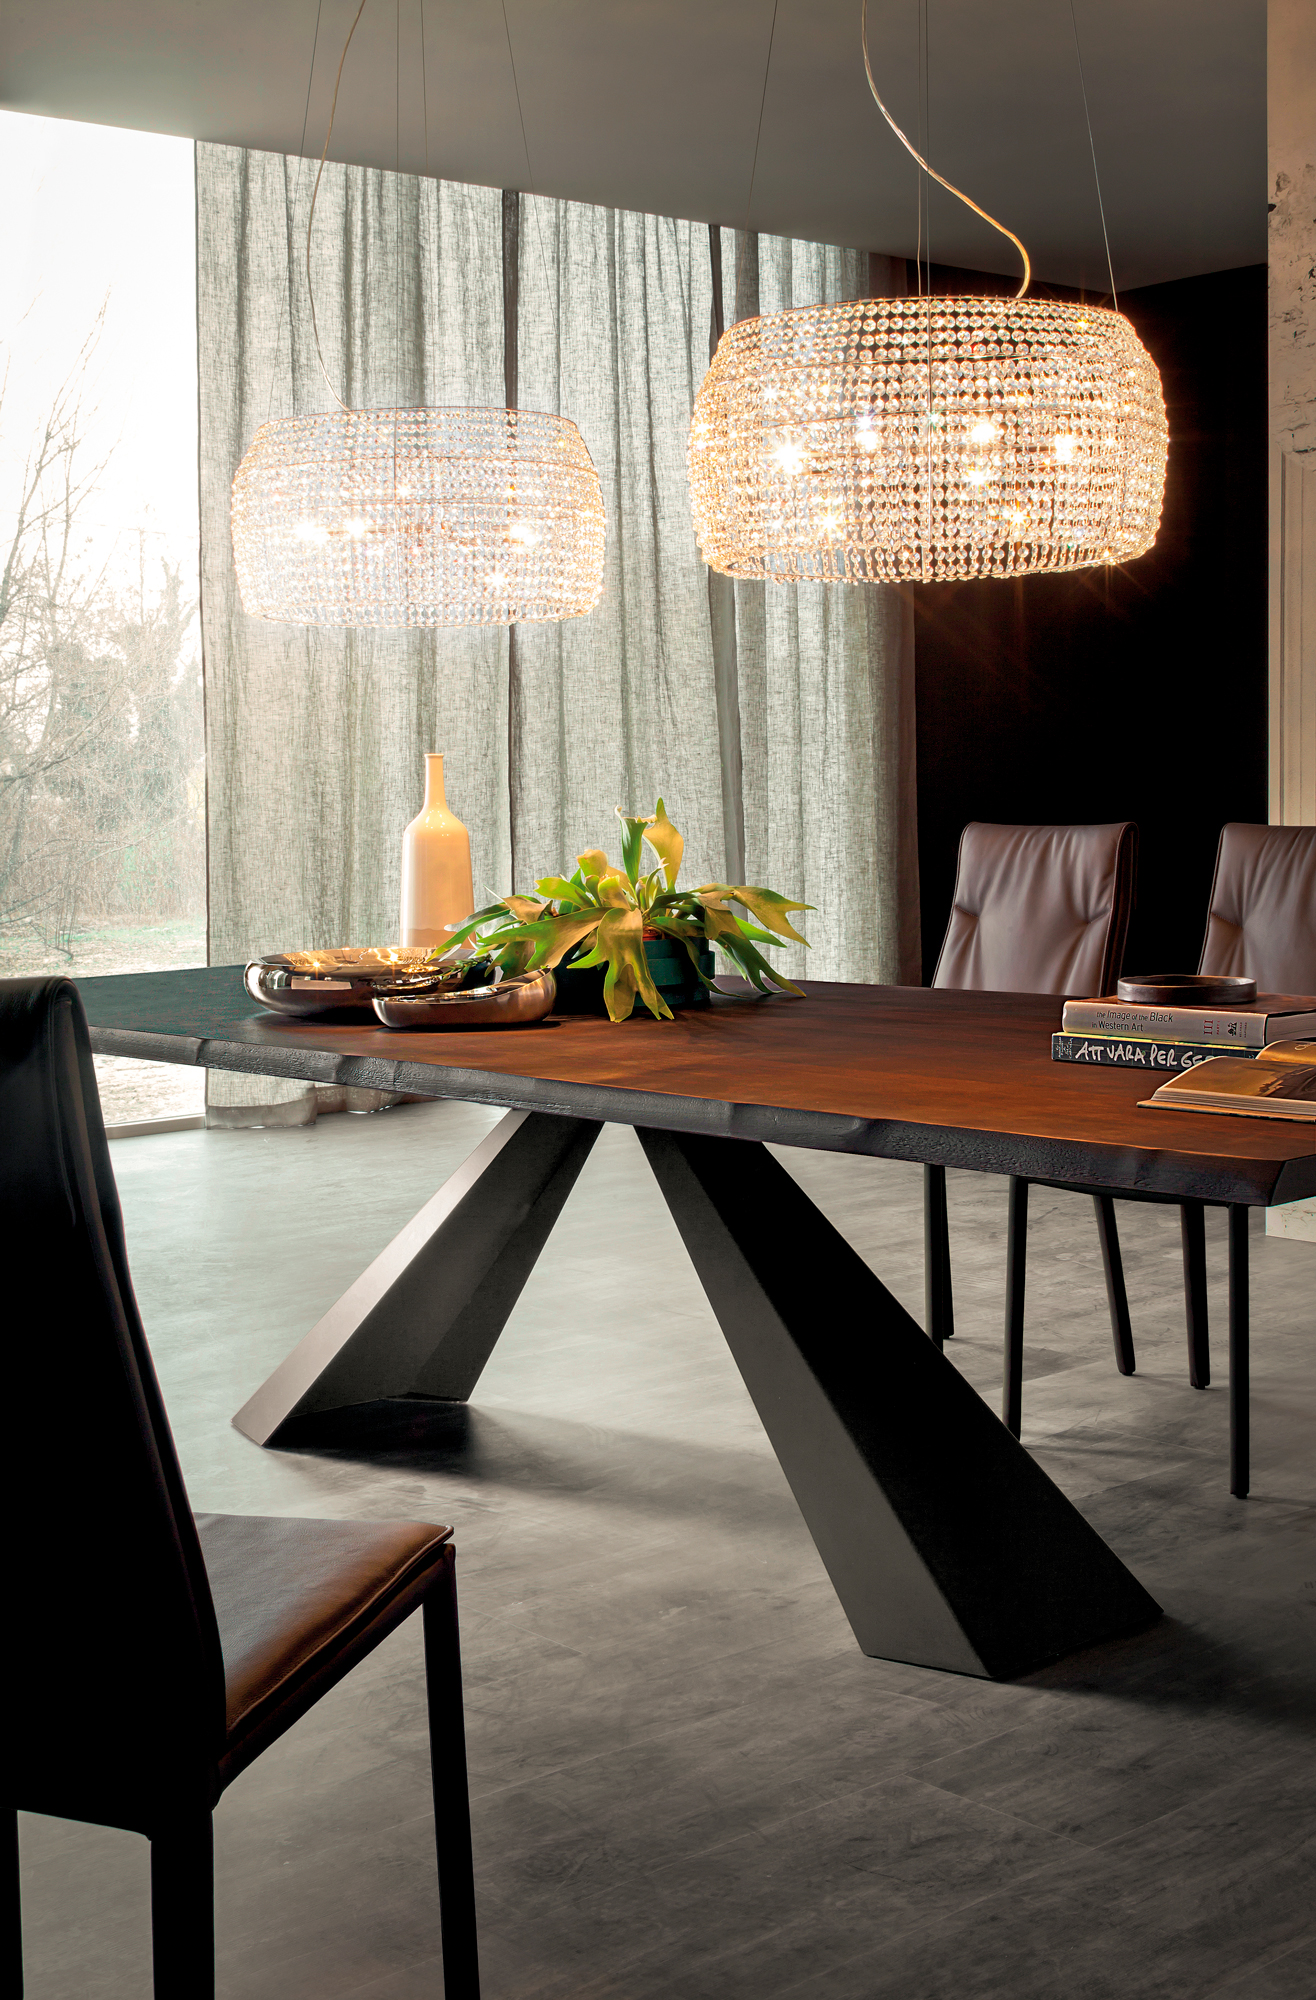 Table Tennis Room Design: Eliot Wood Luxury Contemporary Table